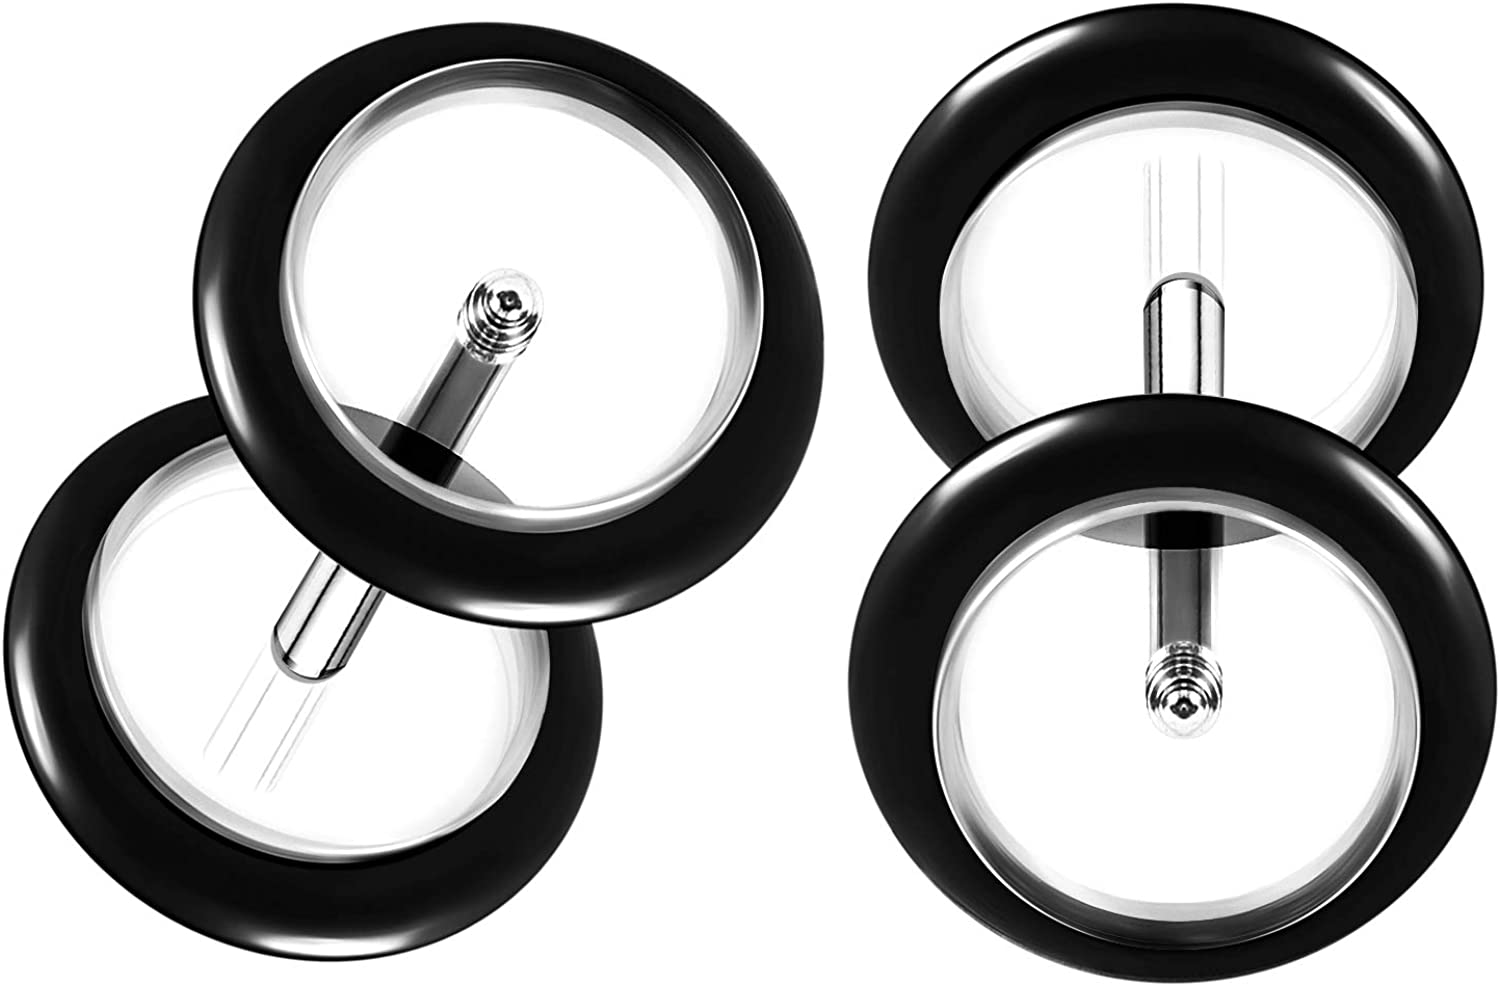 BIG GAUGES 2 Pairs Acrylic 1.2mm 8mm Fake Glow in The Dark Rubber O Ring Plugs Piercing Jewelry Ear Illusion Cheater Logo Earring Lobe